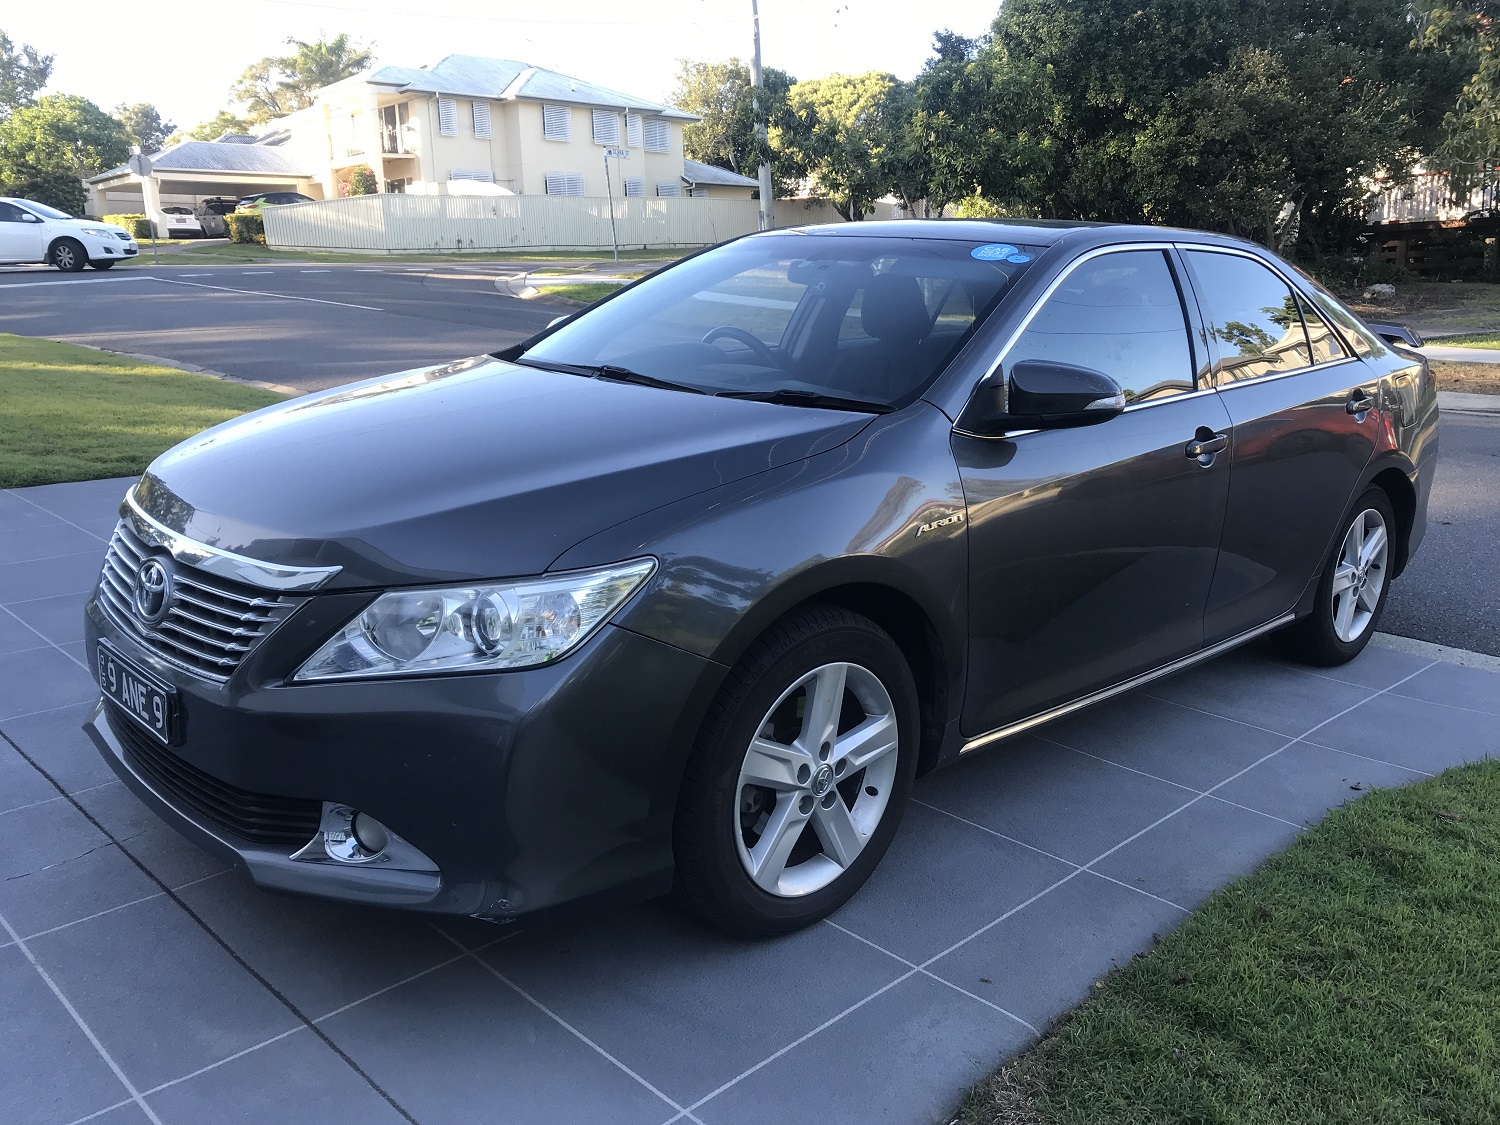 Picture of Anshun's 2012 Toyota Aurion